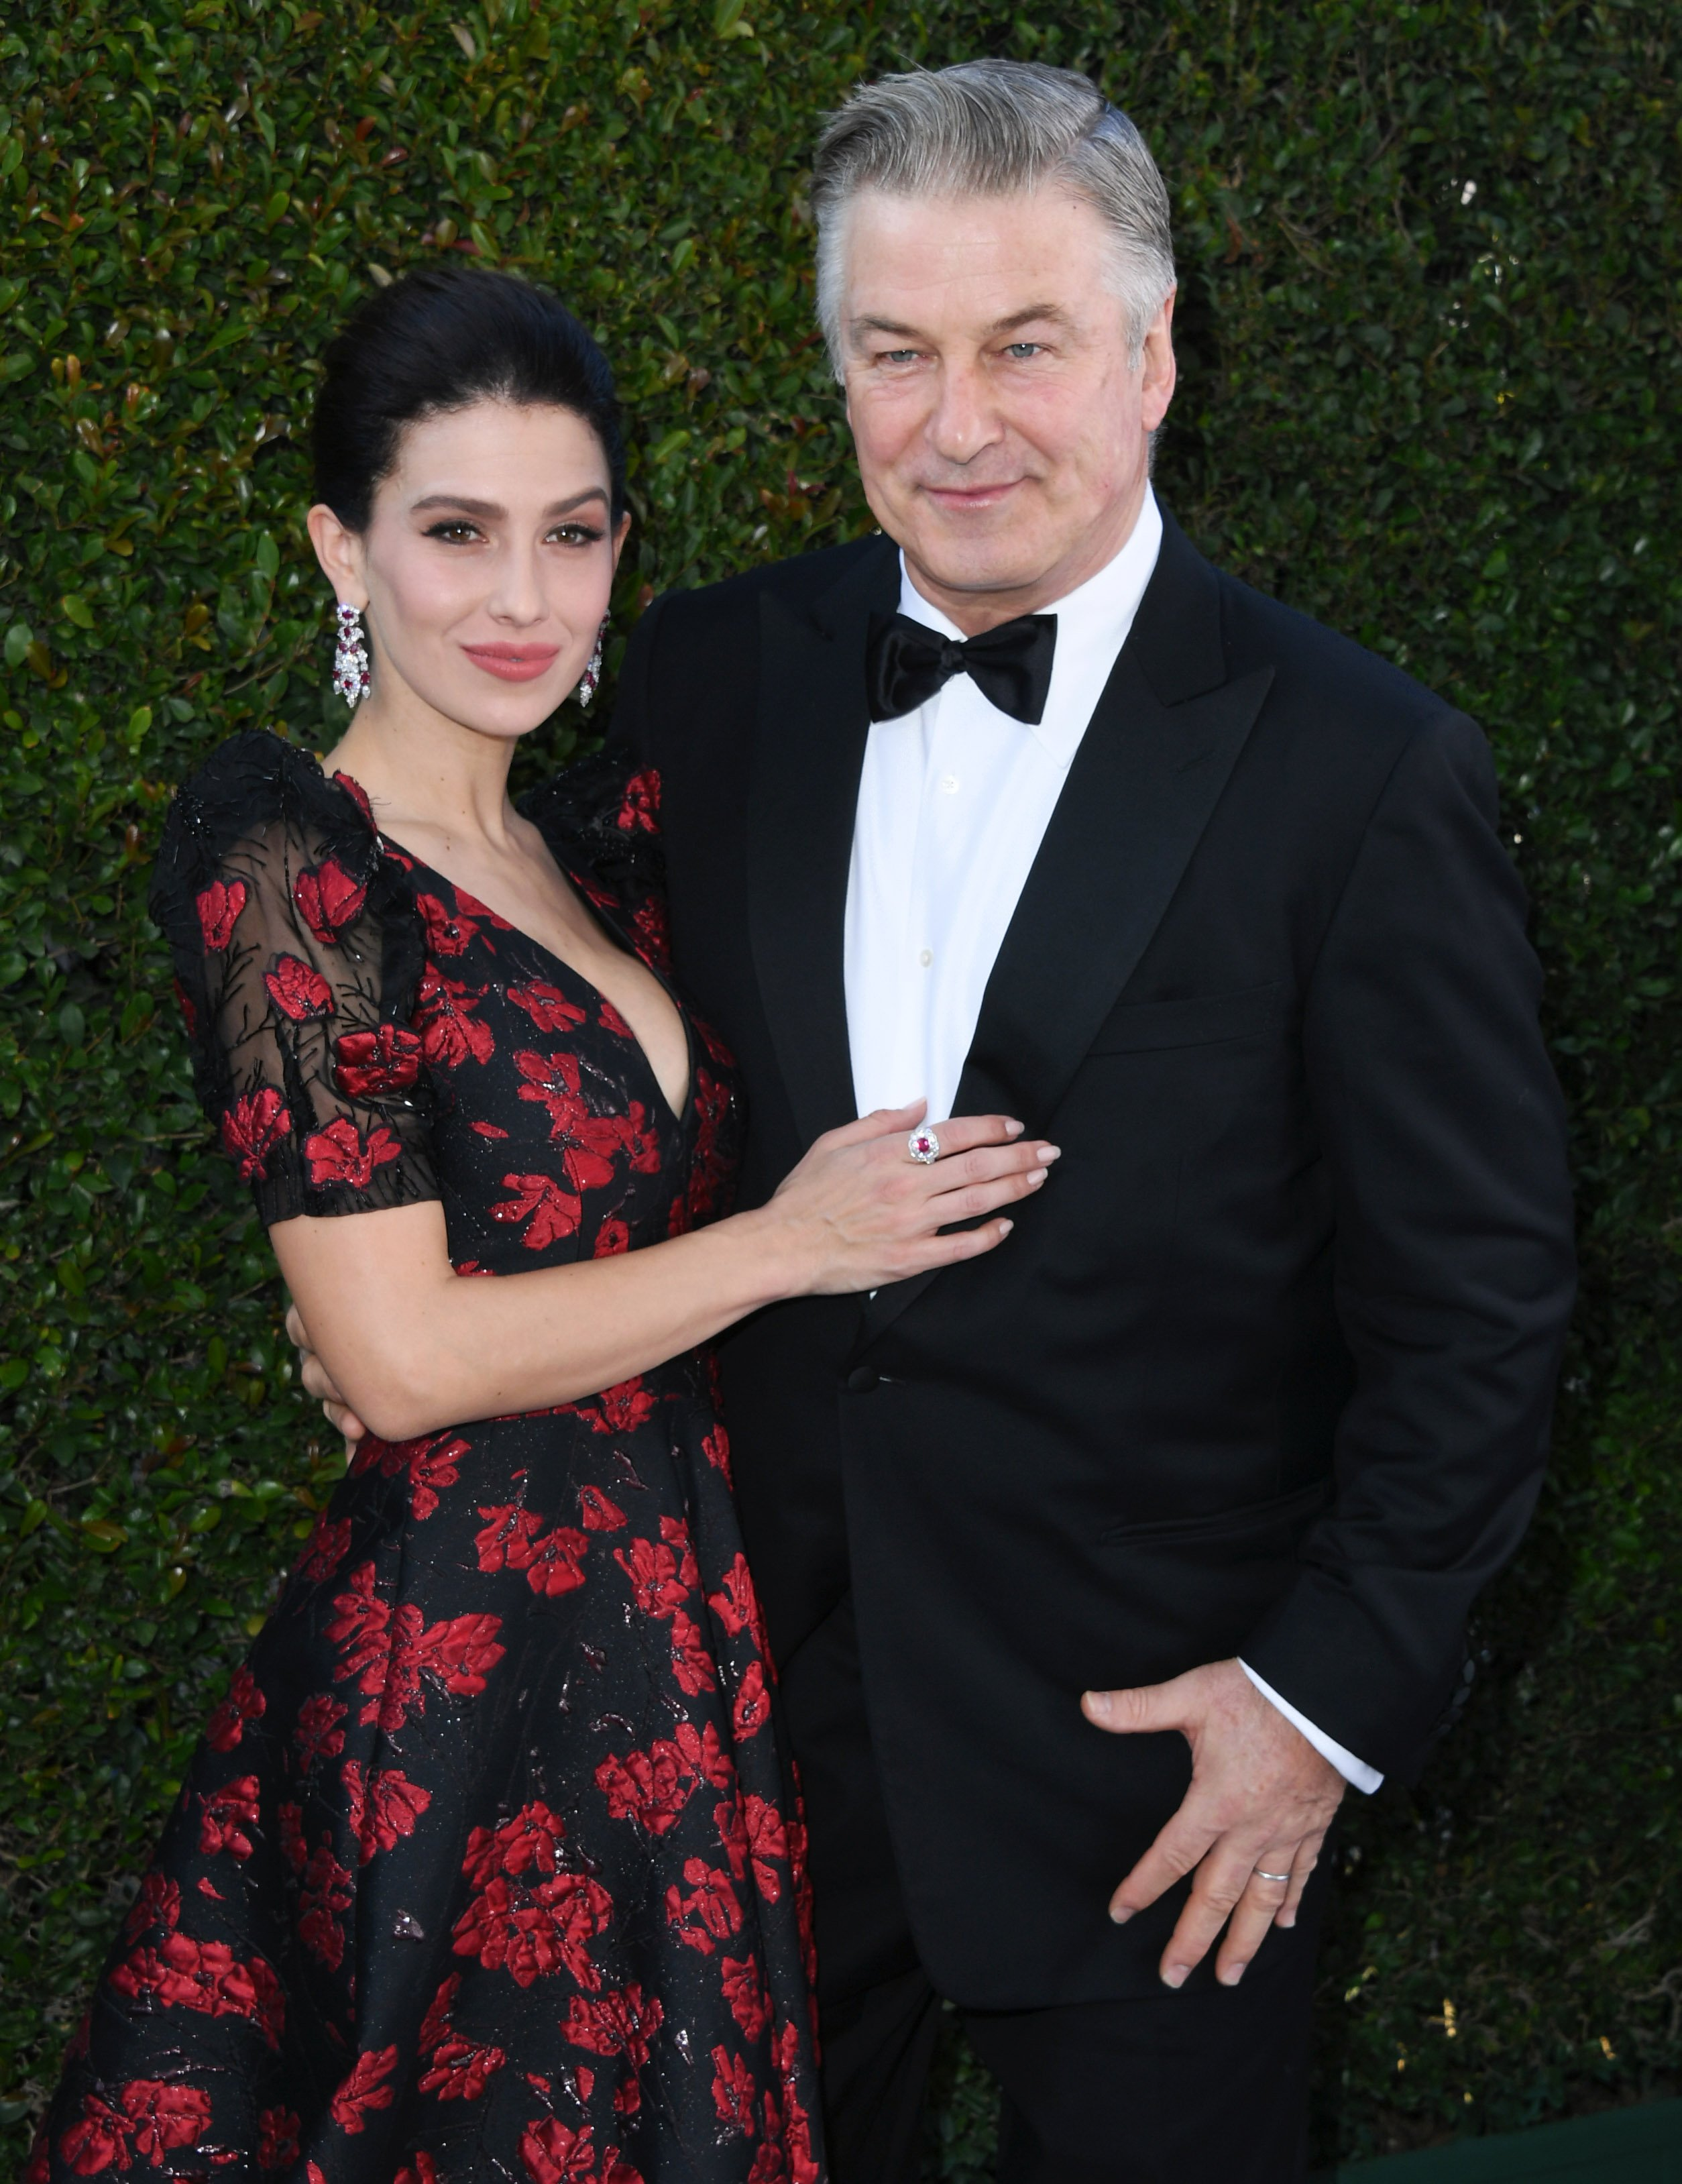 Hilaria Baldwin and Alec Baldwin attend 25th Annual Screen Actors Guild Awards at The Shrine Auditorium on January 27, 2019. | Photo: Getty Images